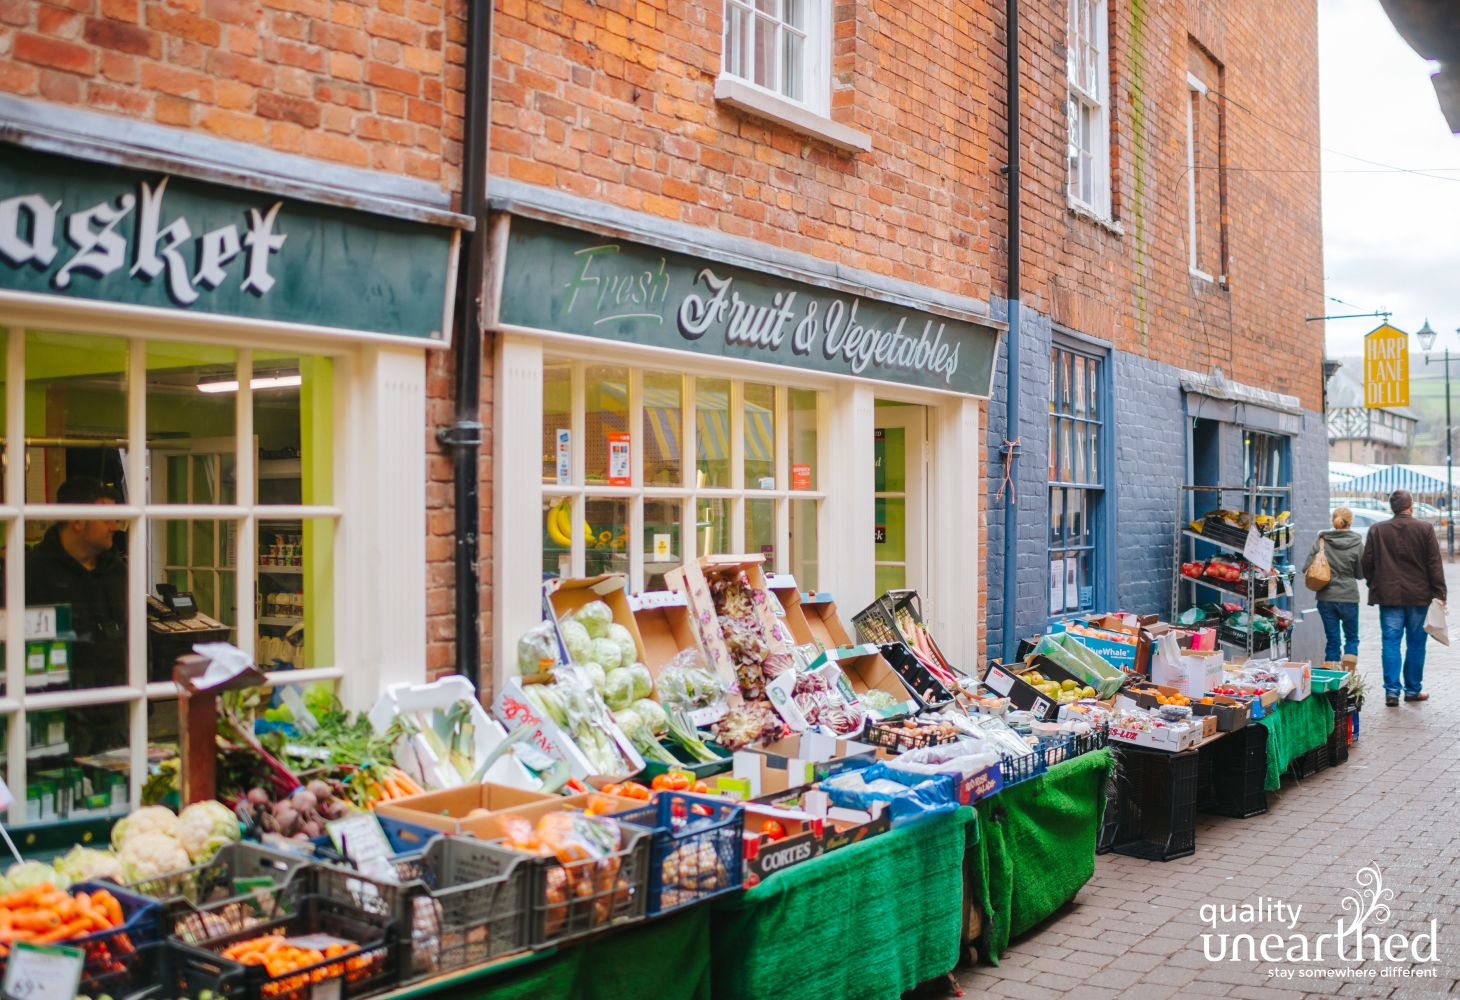 A classic grocers in Ludlow, only 6 miles from this Shropshire geodome